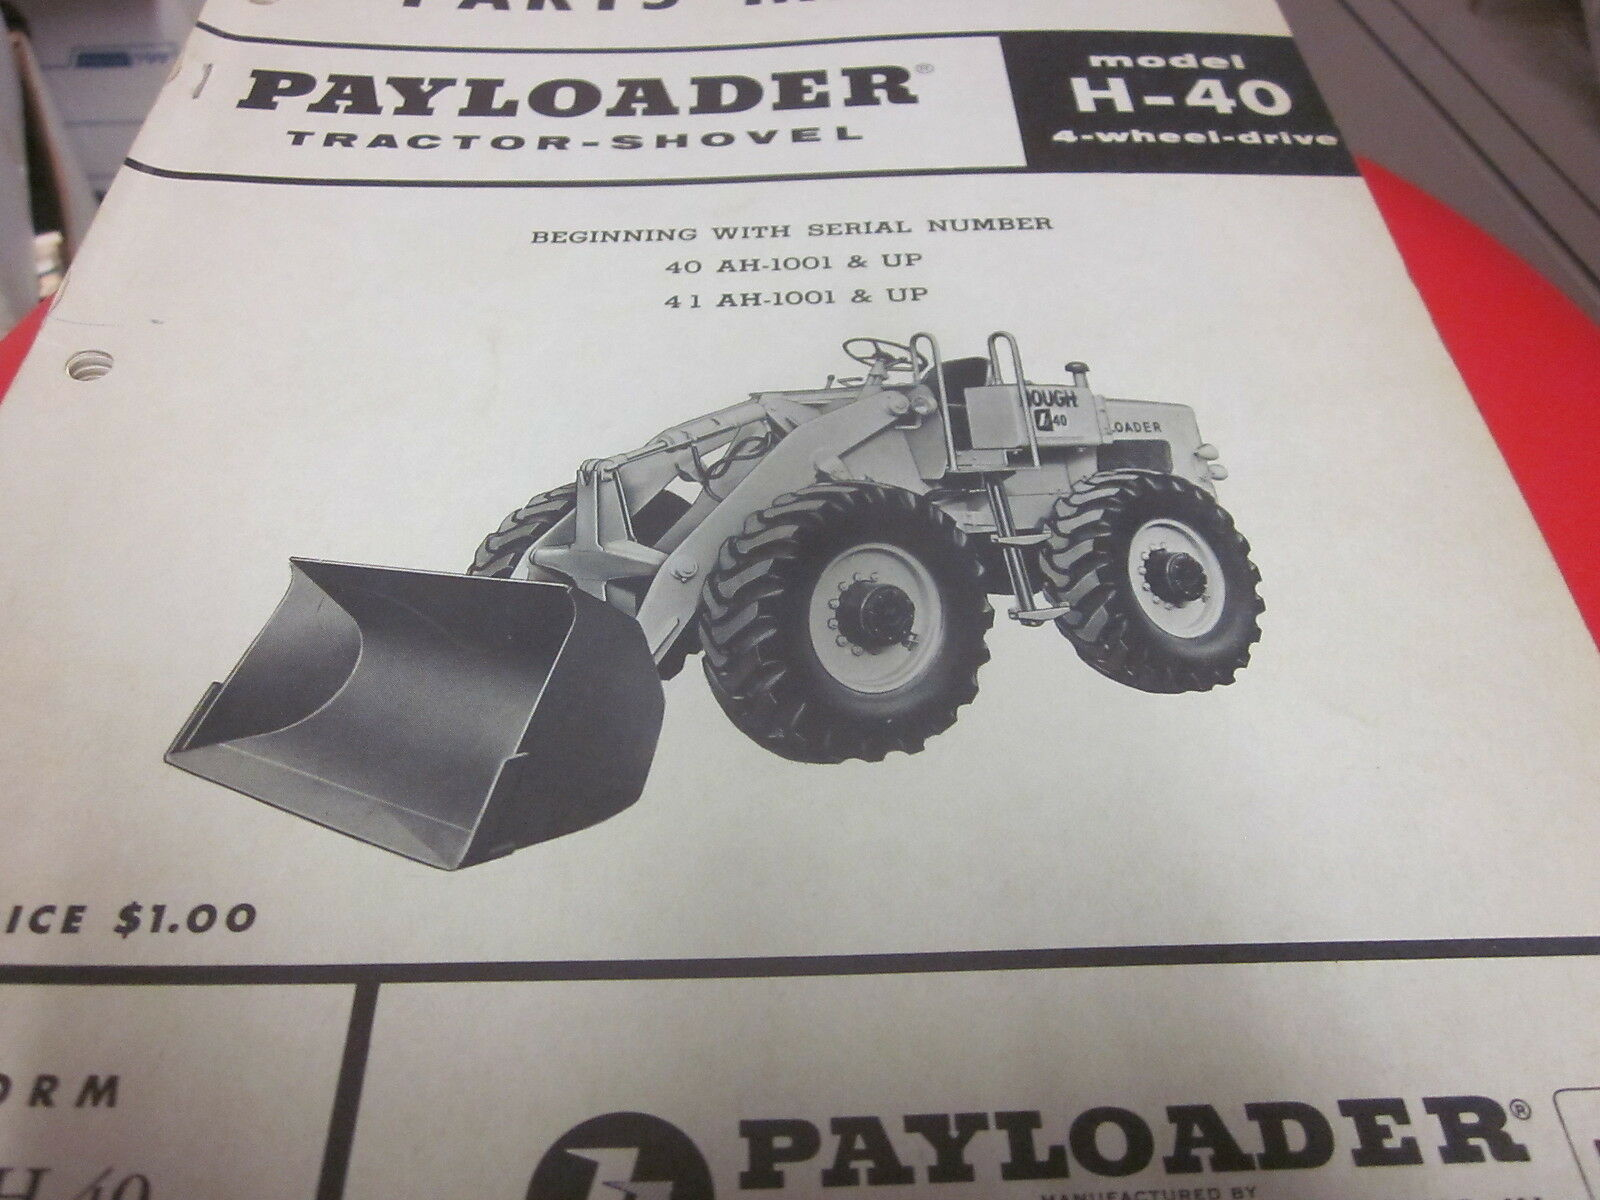 International Hough H-40 Pay Loader Tractor Shovel Parts Manual 1 of 2Only  1 available International Hough H-40 Pay Loader Tractor Shovel Parts Manual